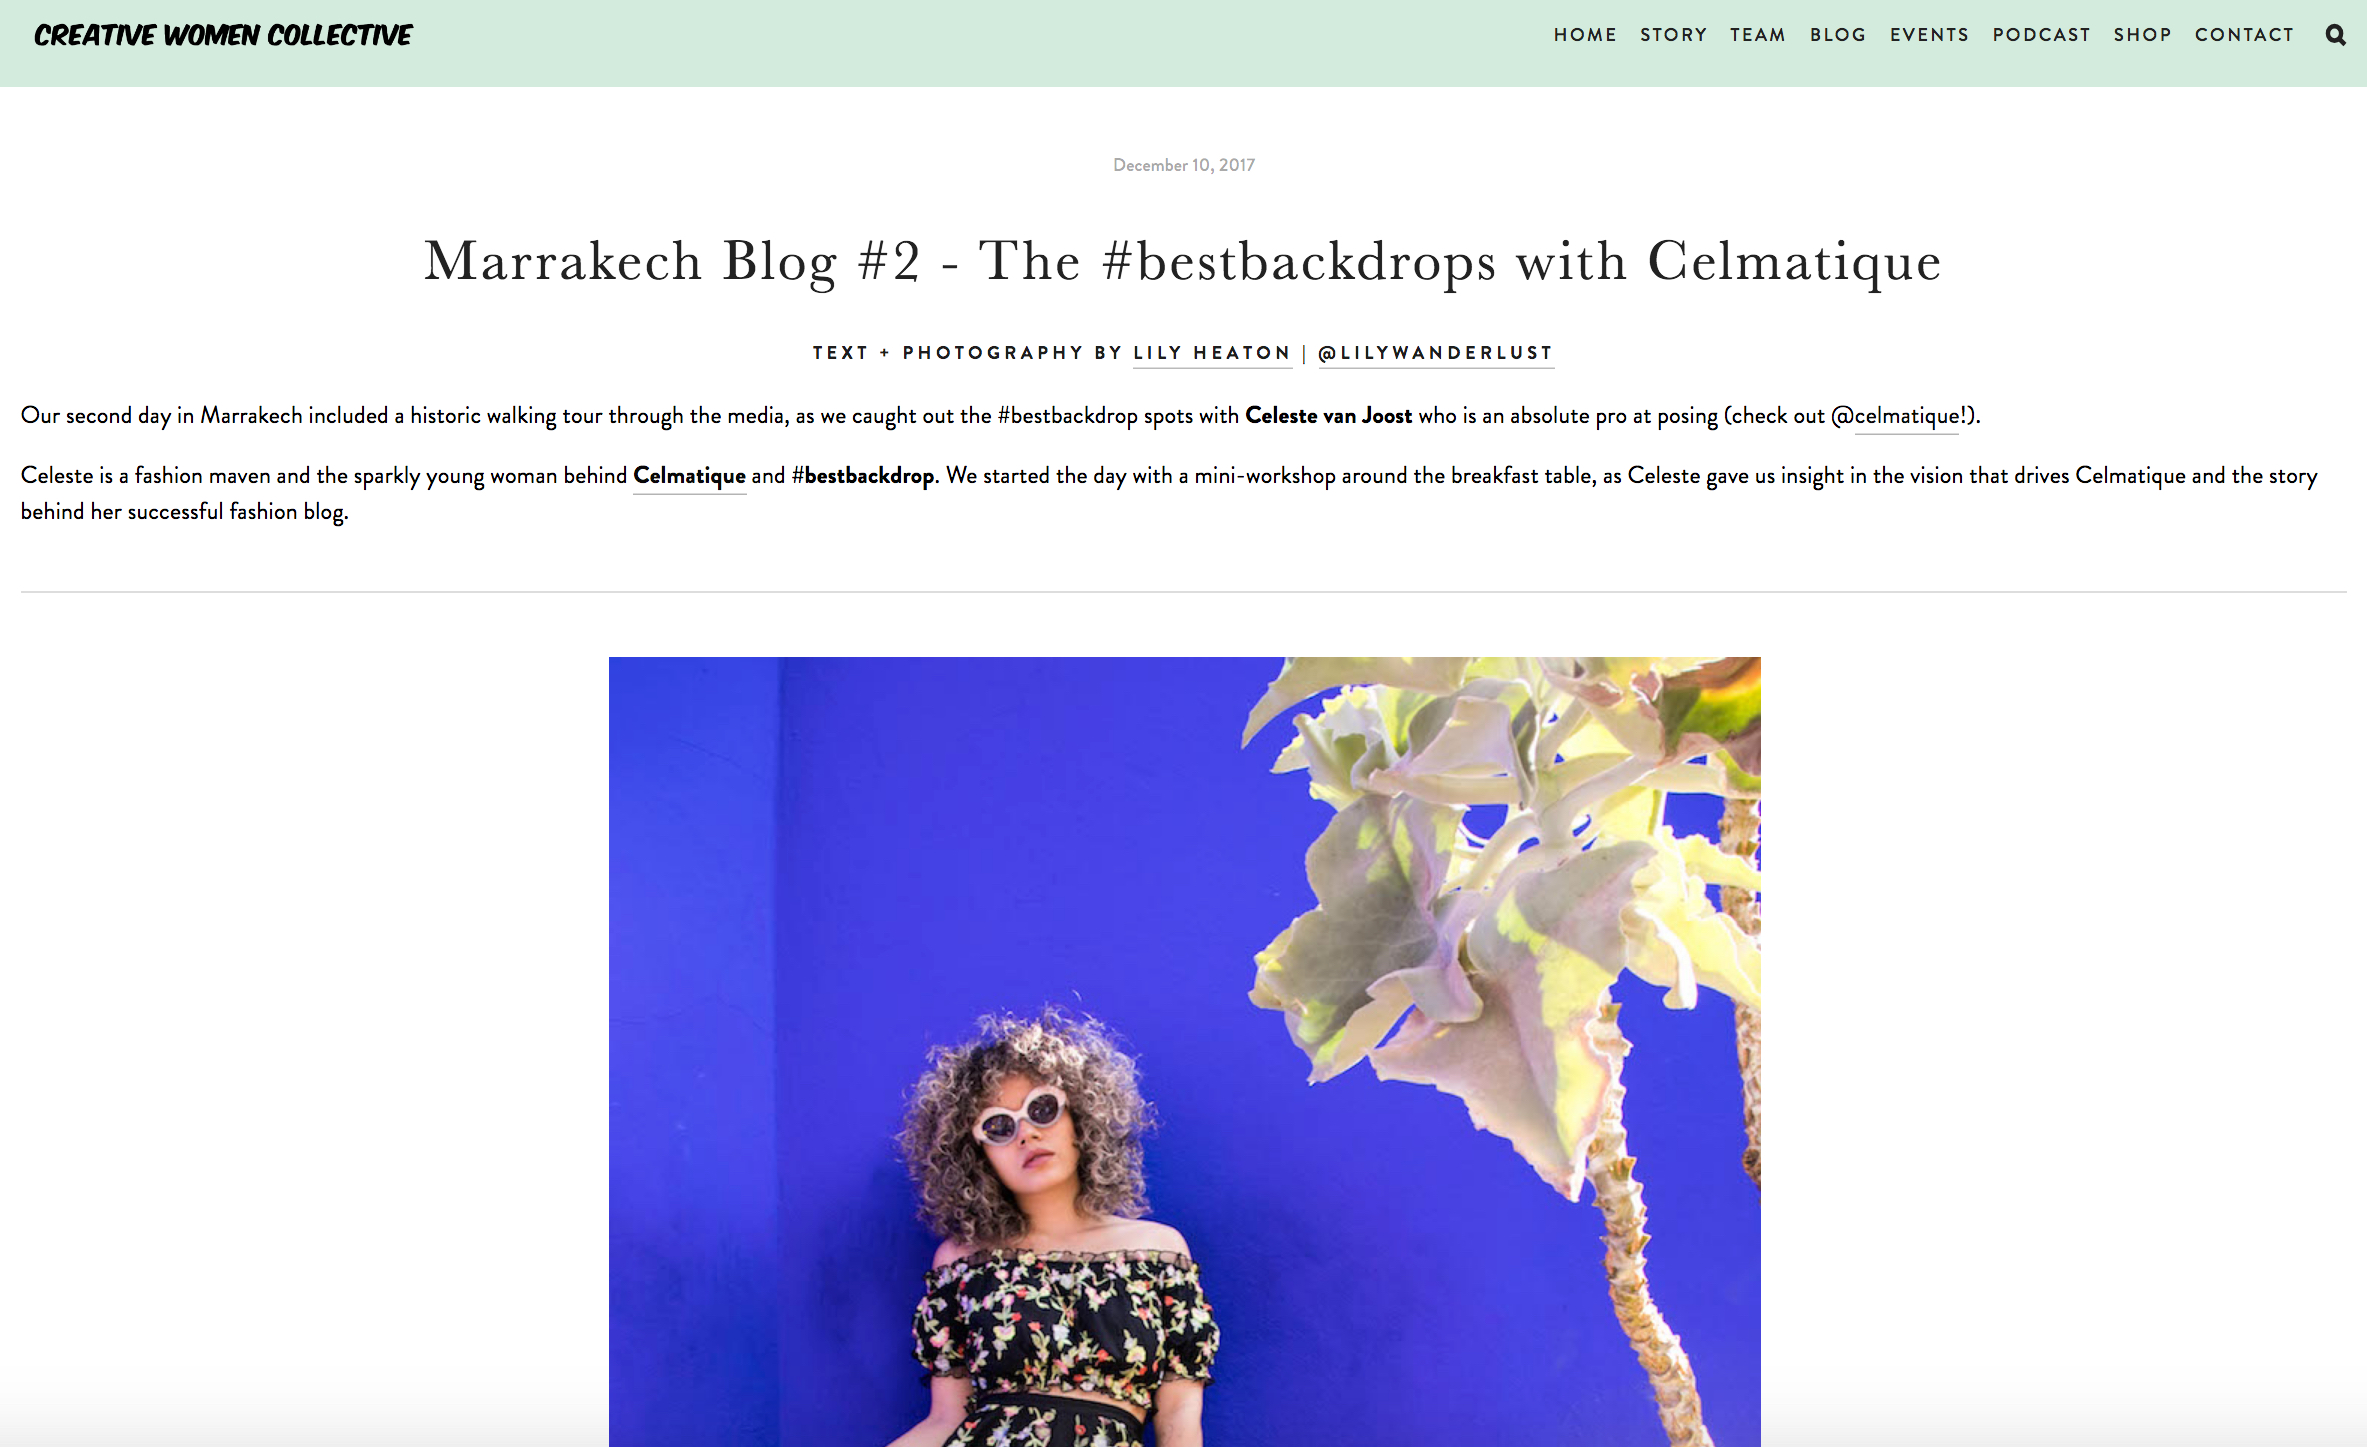 CWC Blog - Marrakech with Celmatique